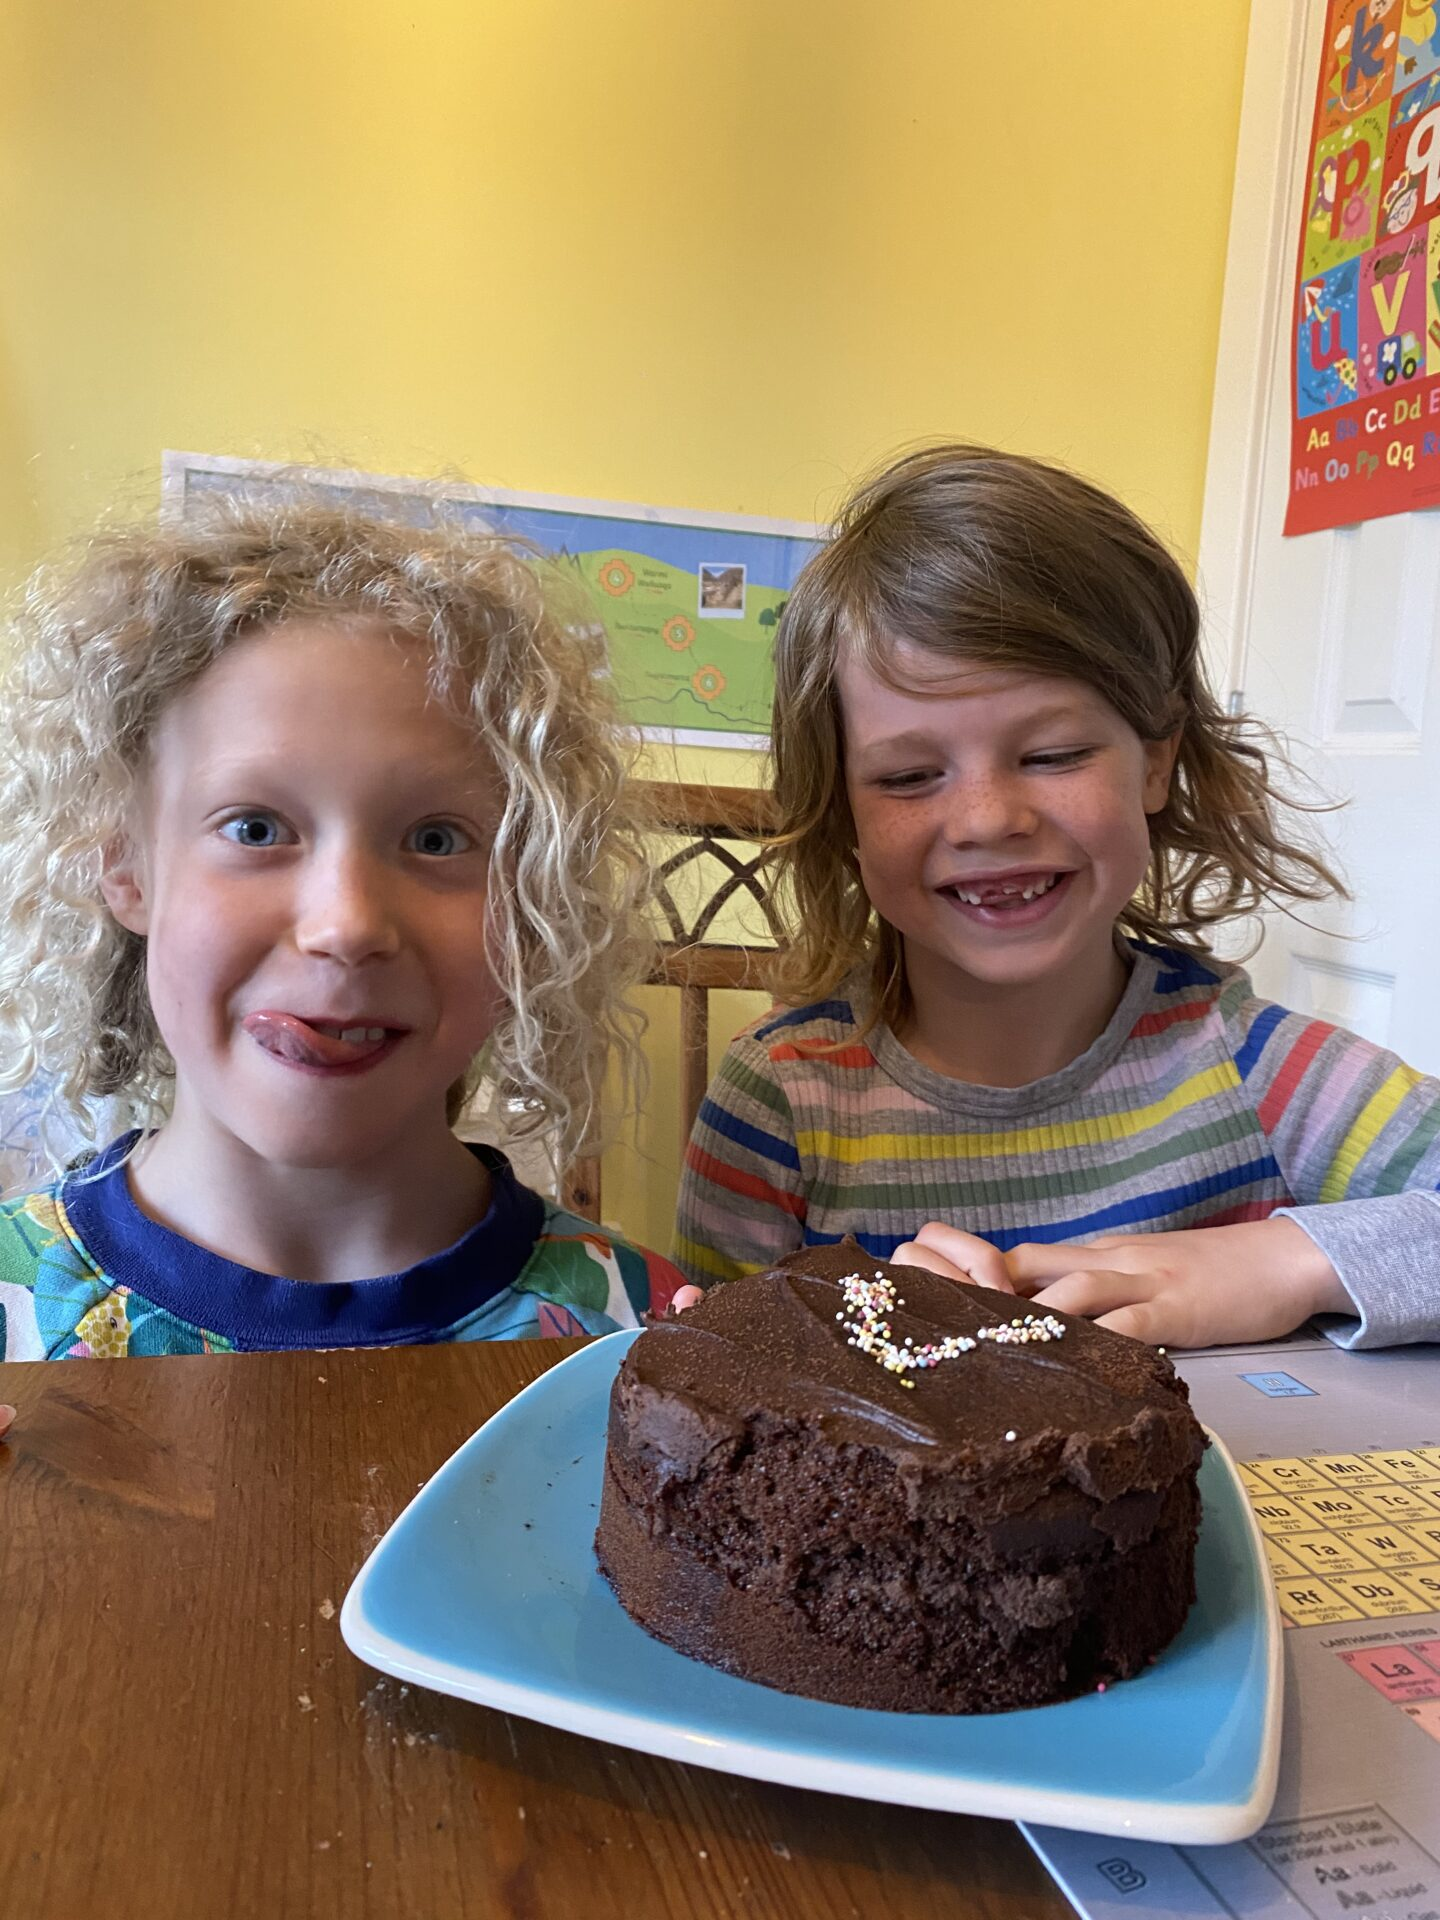 children sitting beside a chocolate cake with a V for voting day